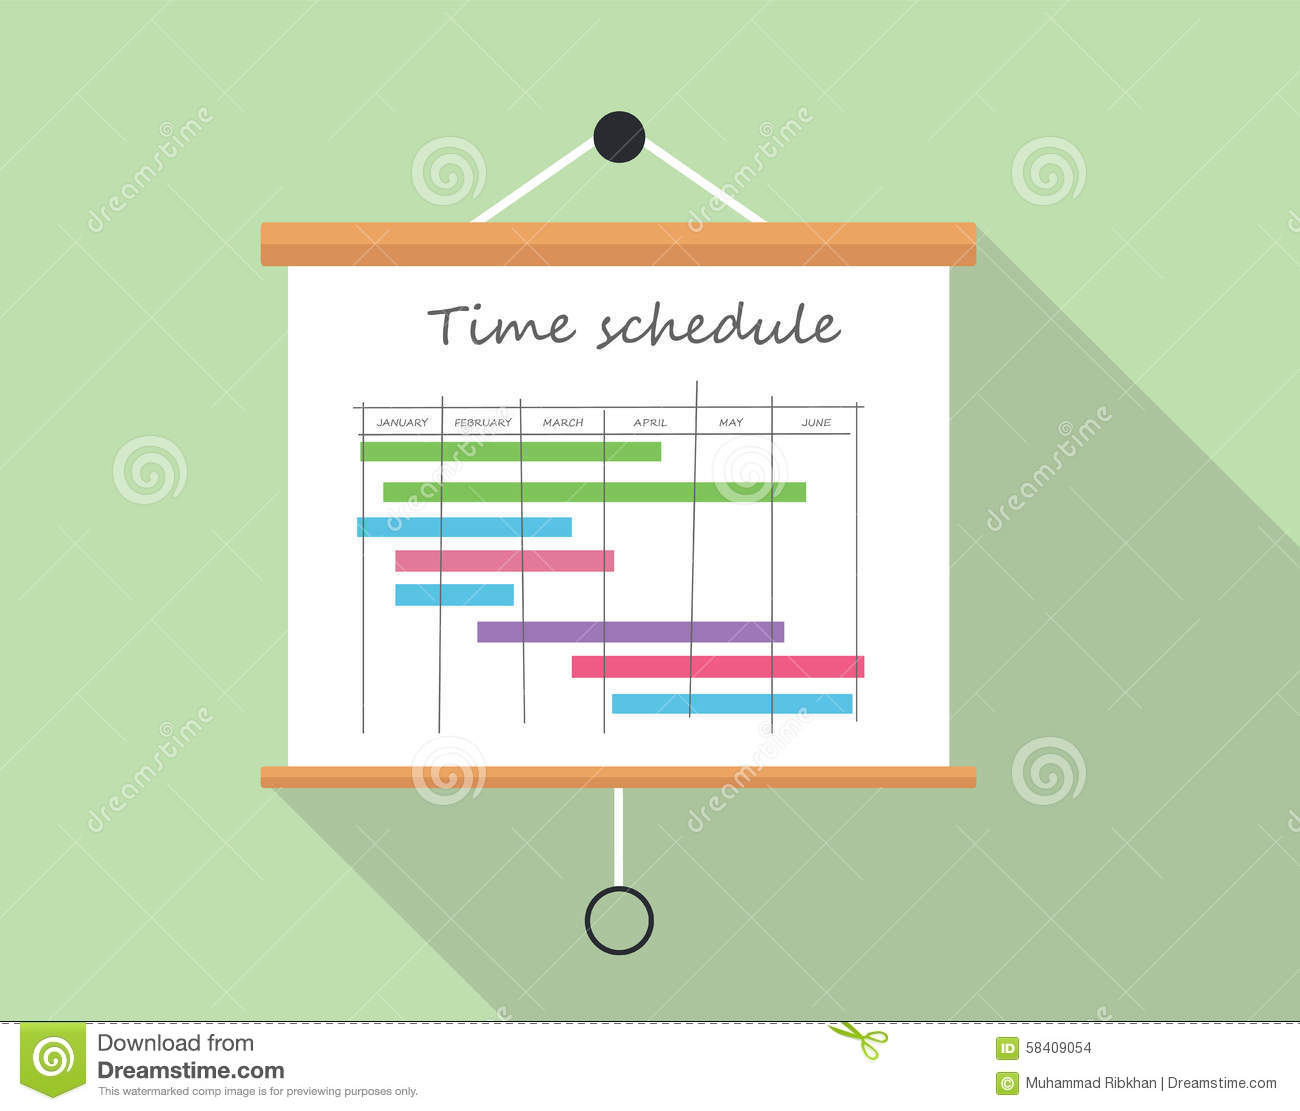 project time schedule stock vector illustration of presentation